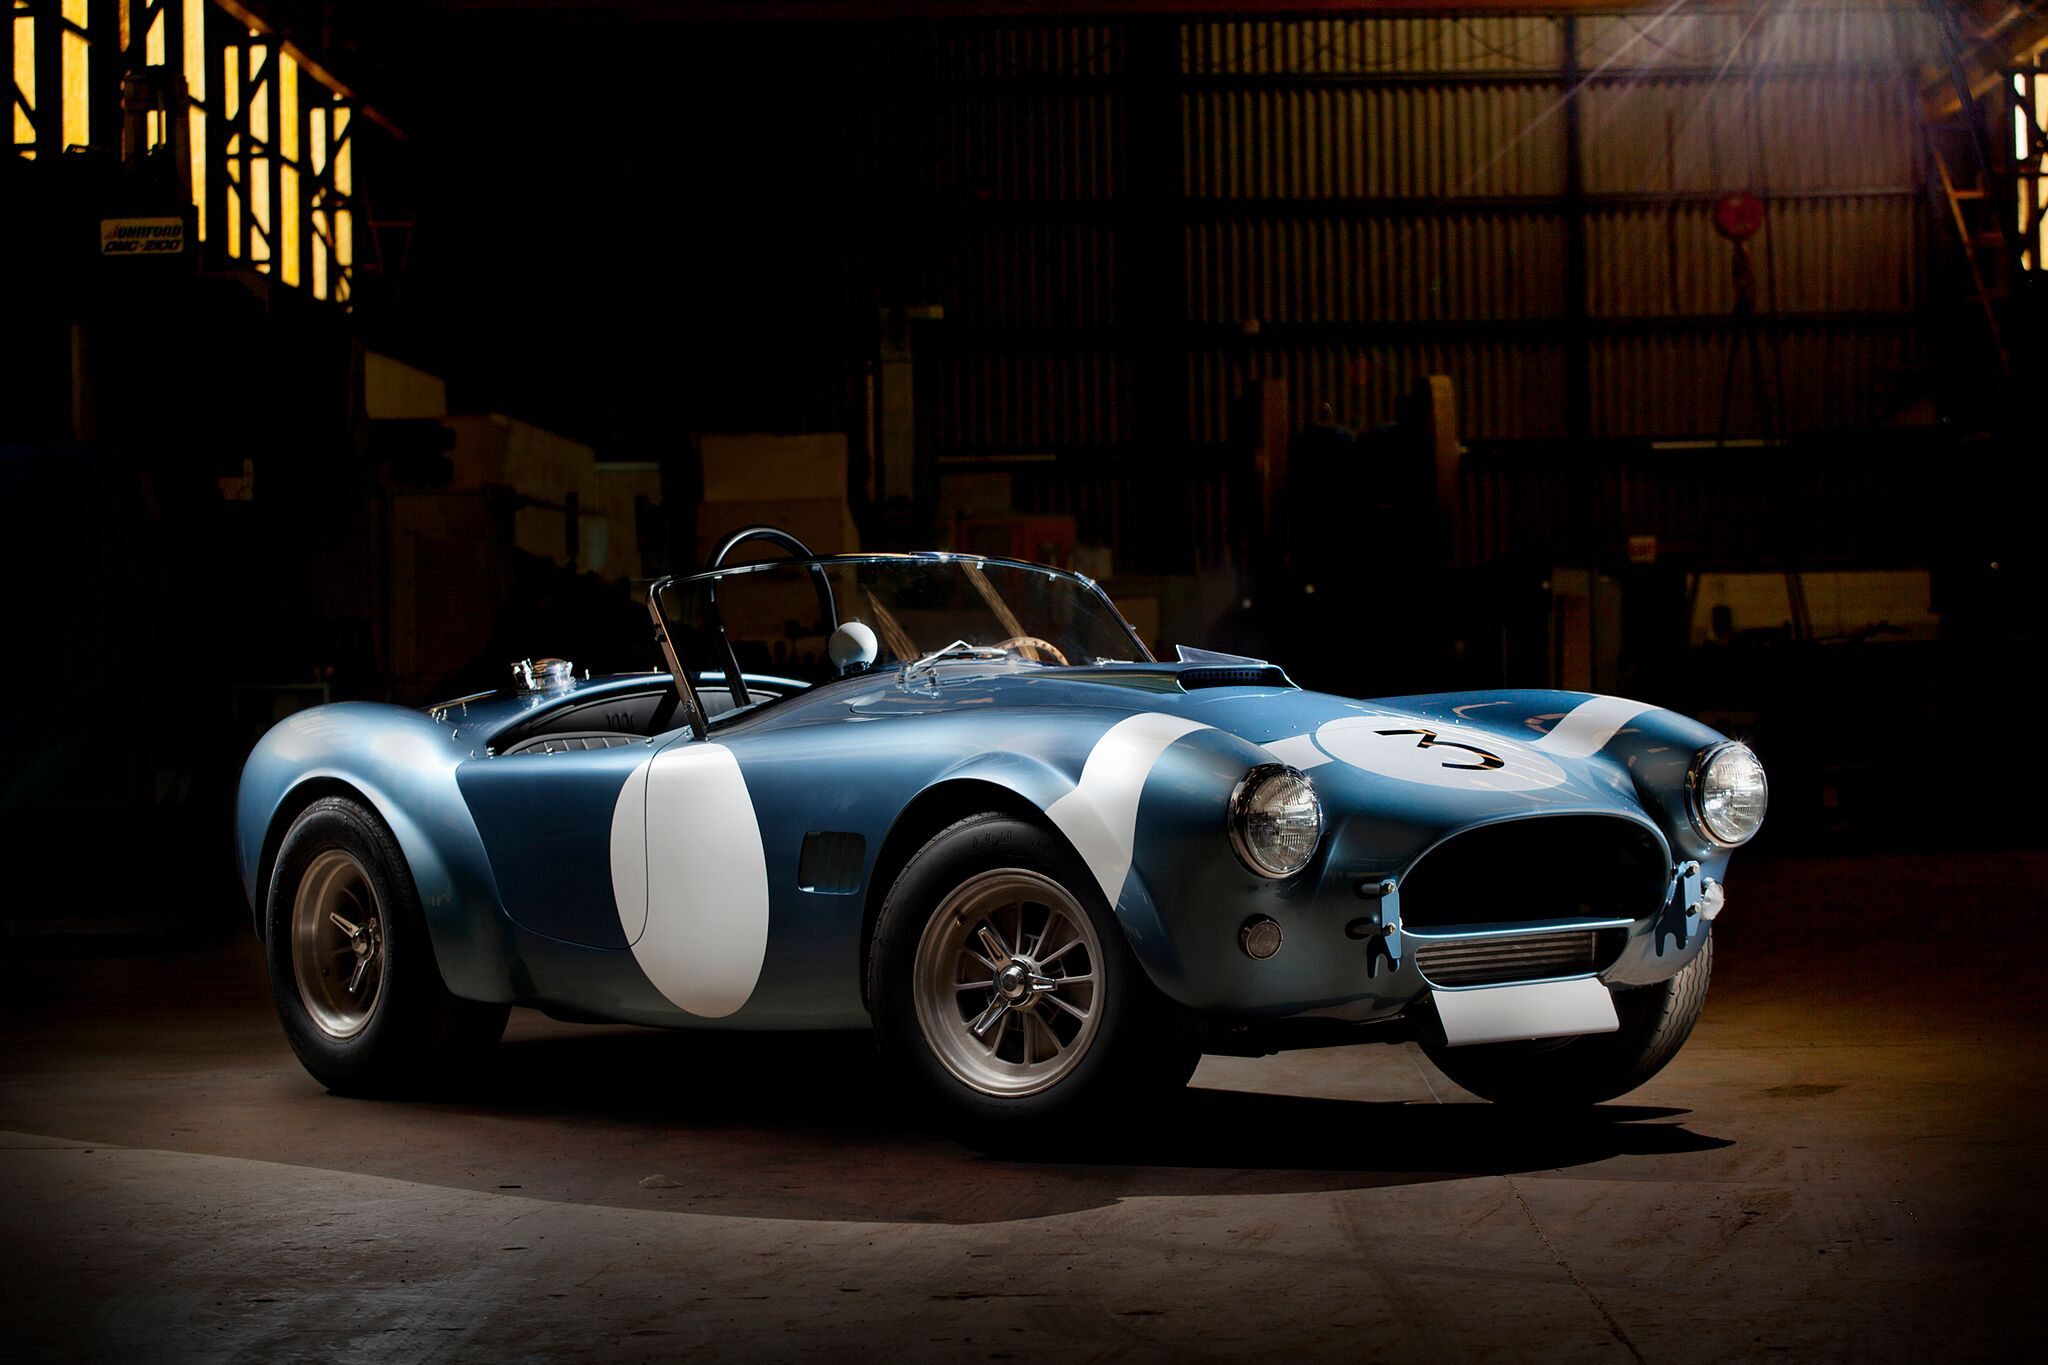 RARE SHELBY BONDURANT EDITION CSX2000 SERIES COBRA ROADSTER TO BE AUCTIONED AT BARRETT-JACKSON